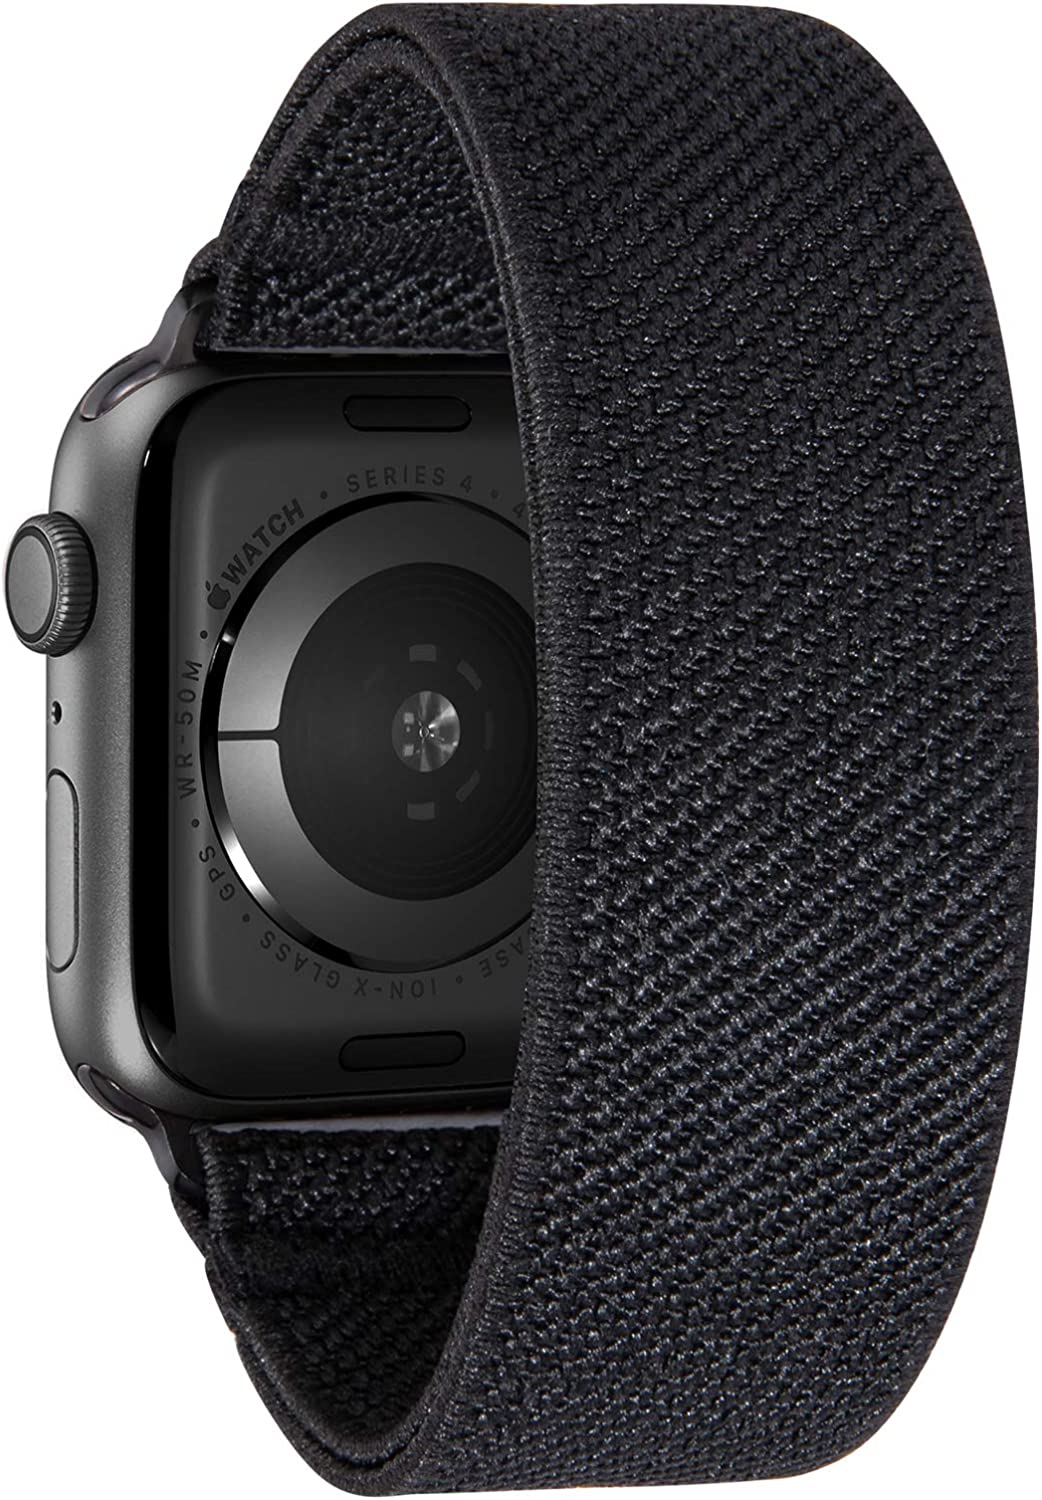 Nomchi Double Layer Loop Elastic Compatible/Replacement Band for Apple Watch 38mm 40mm 42mm 44mm (Solid Black, Wrist Size: 5.5-5.9 inch (S),42mm/44mm)